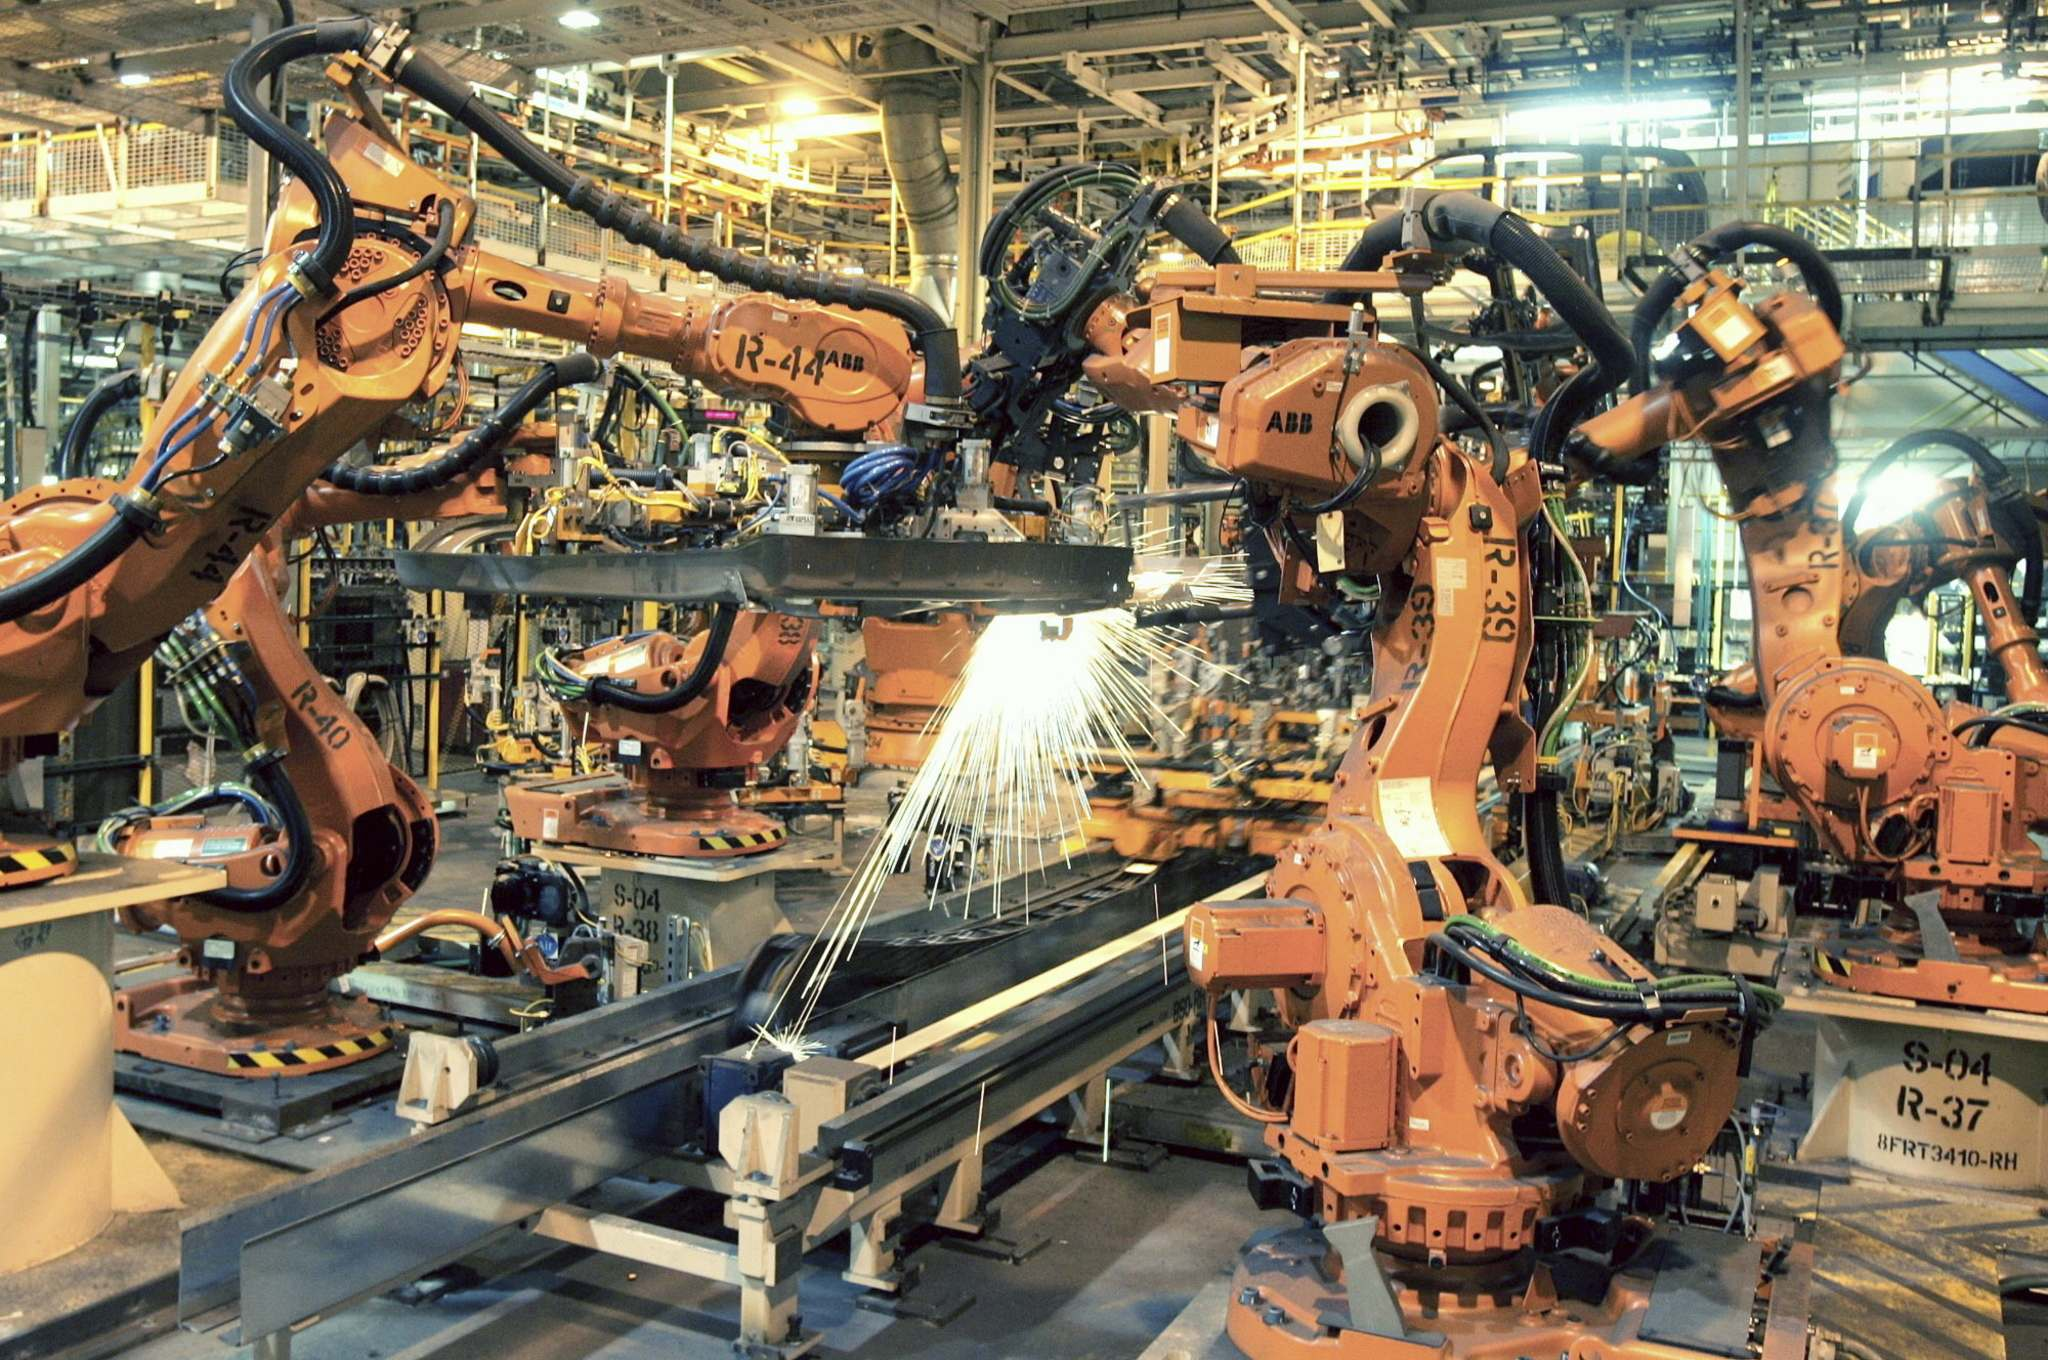 Jerry S. Mendoza / The Associated Press files</p><p>Robots such the ones seen here on an automotive assembly line have replaced many factory work jobs.</p>